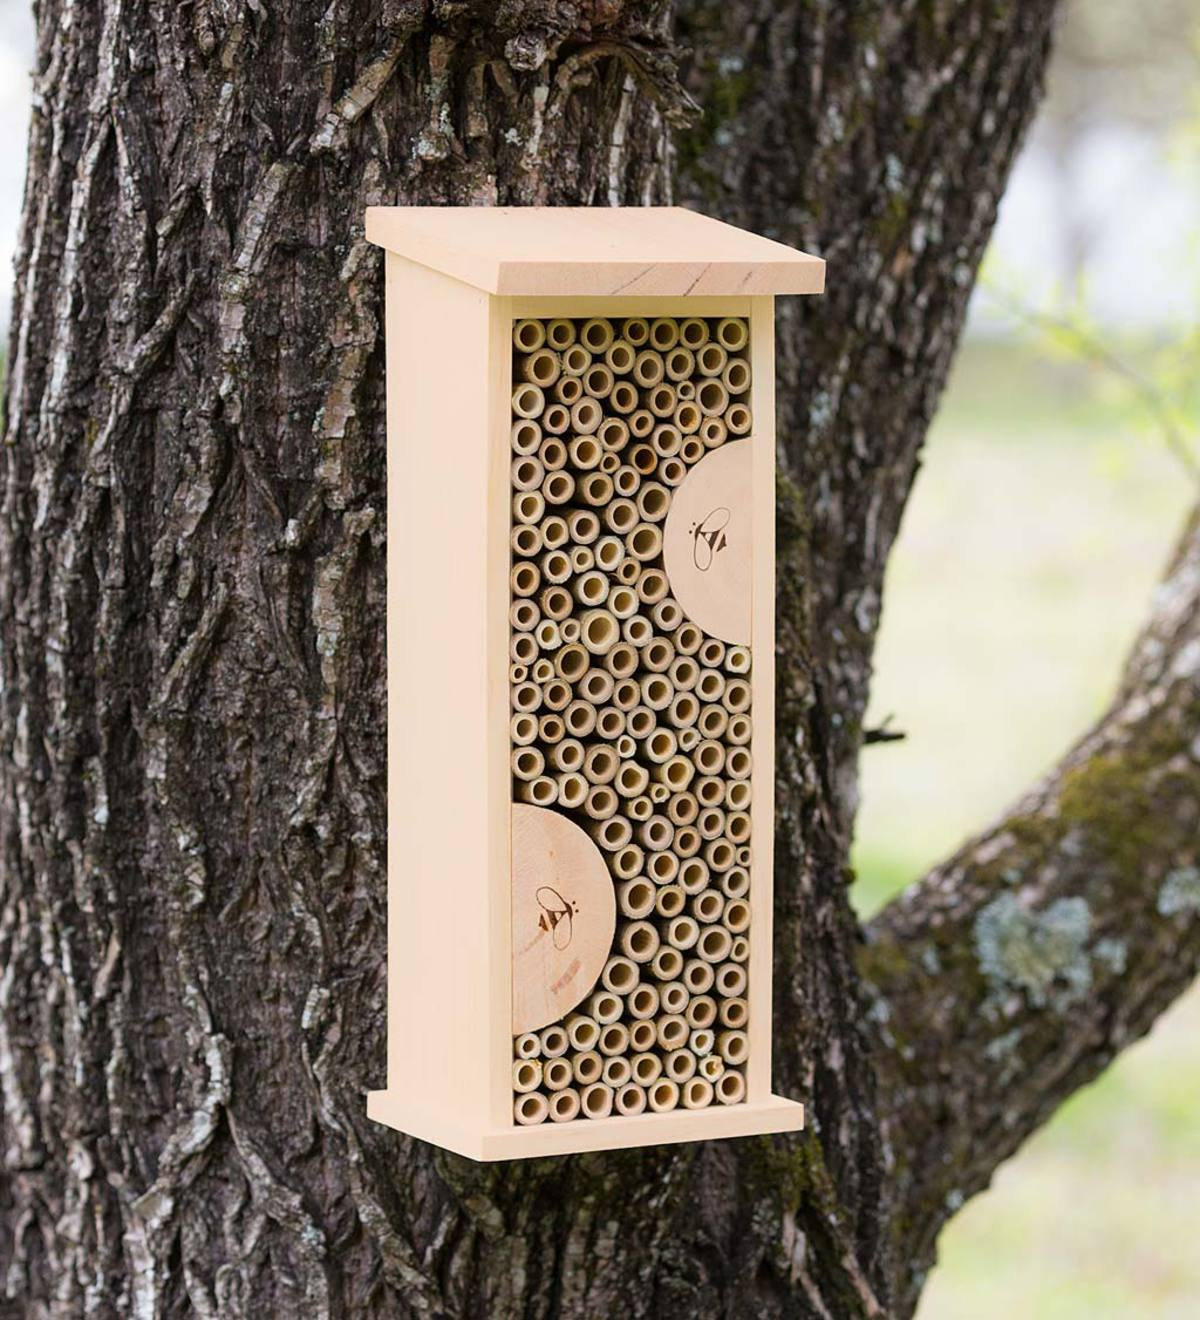 Bee House with Field Guide Cards